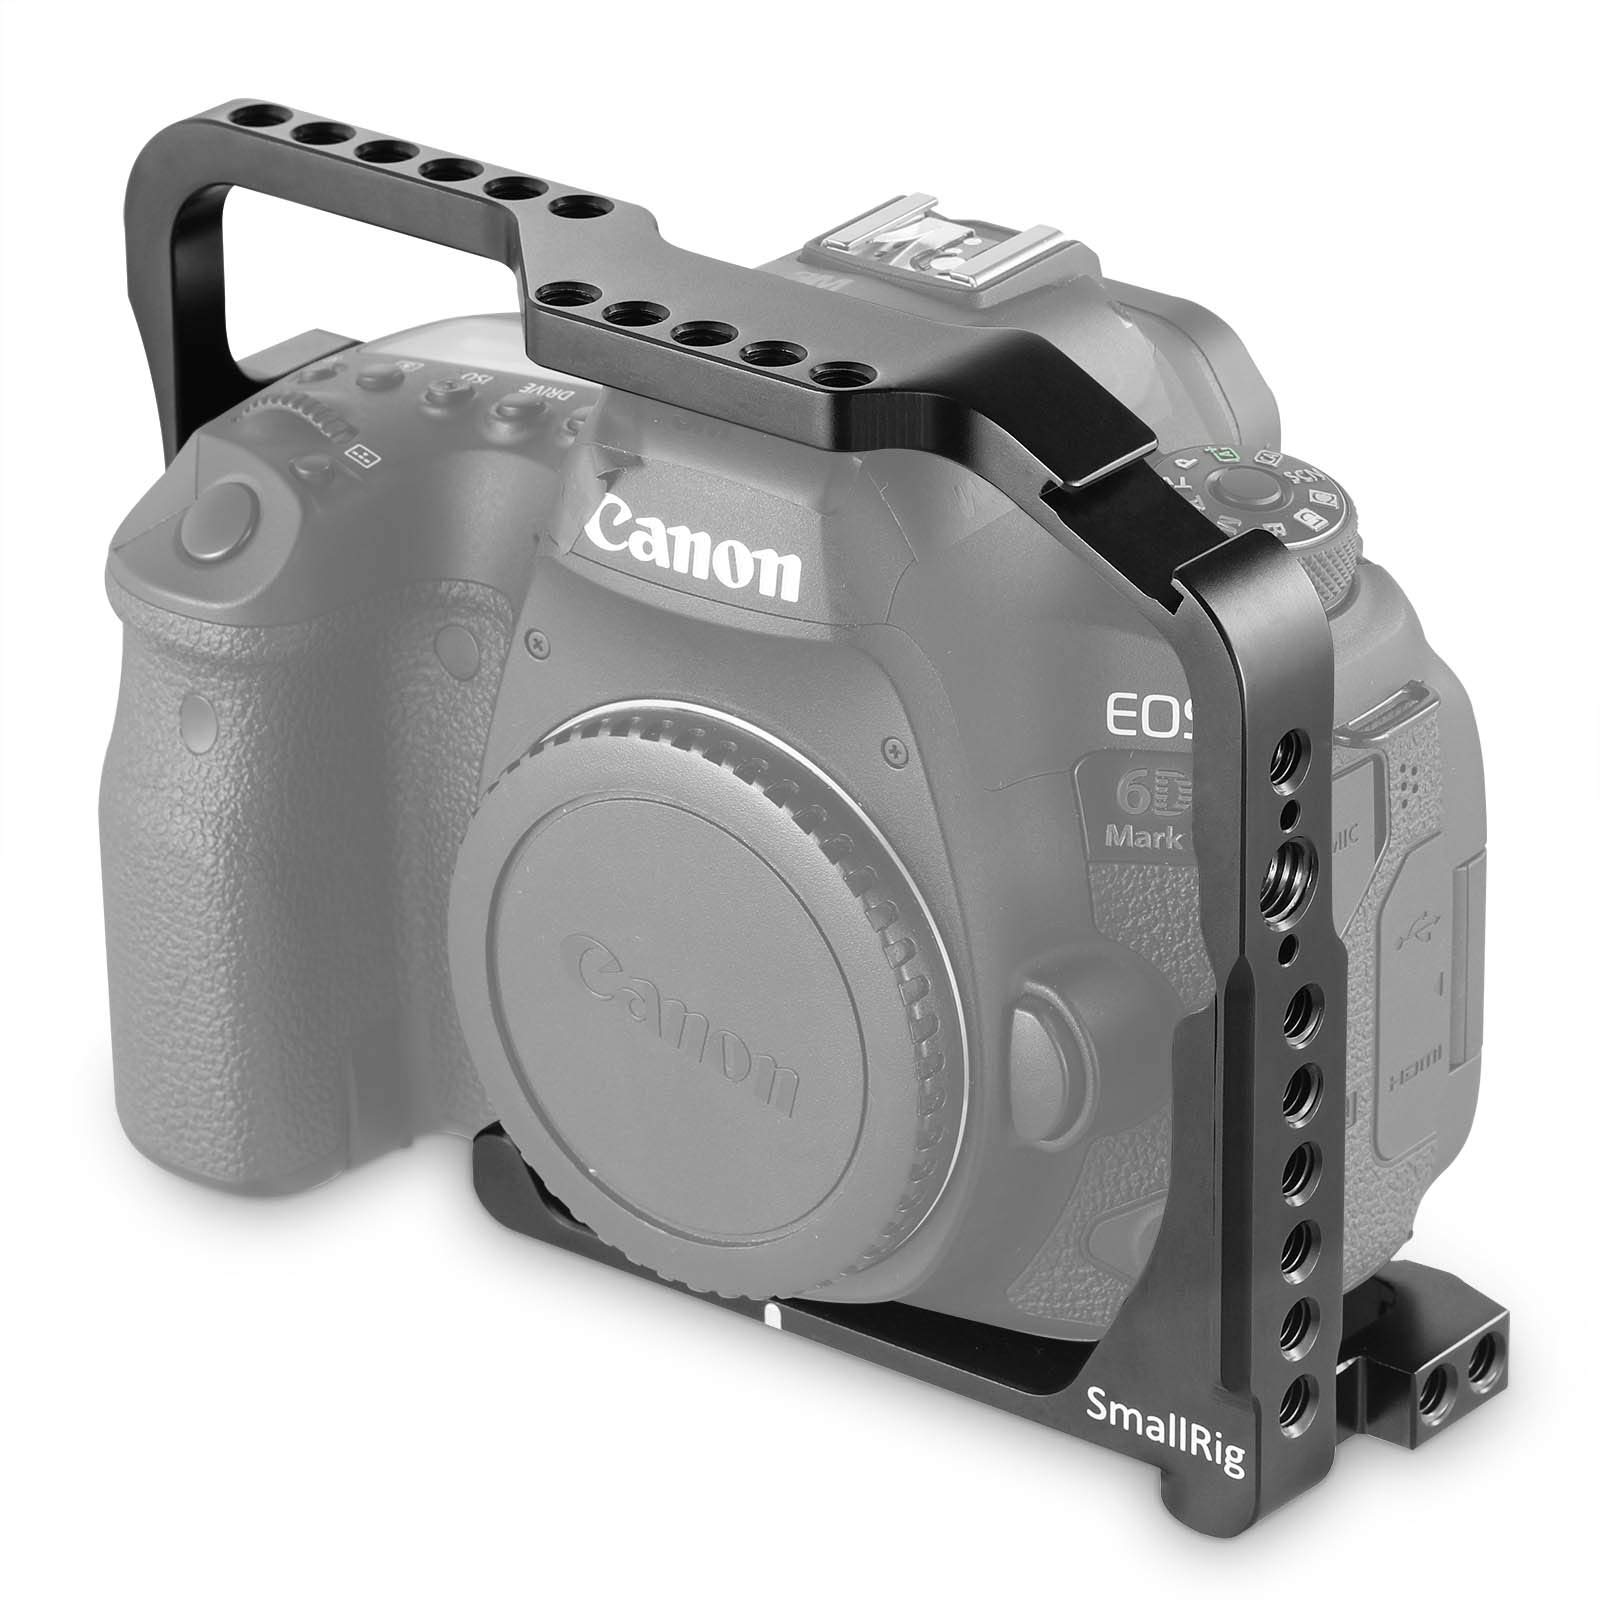 Smallrig 2142 Cage For Canon Eos 6d Mark Ii With Integrat..